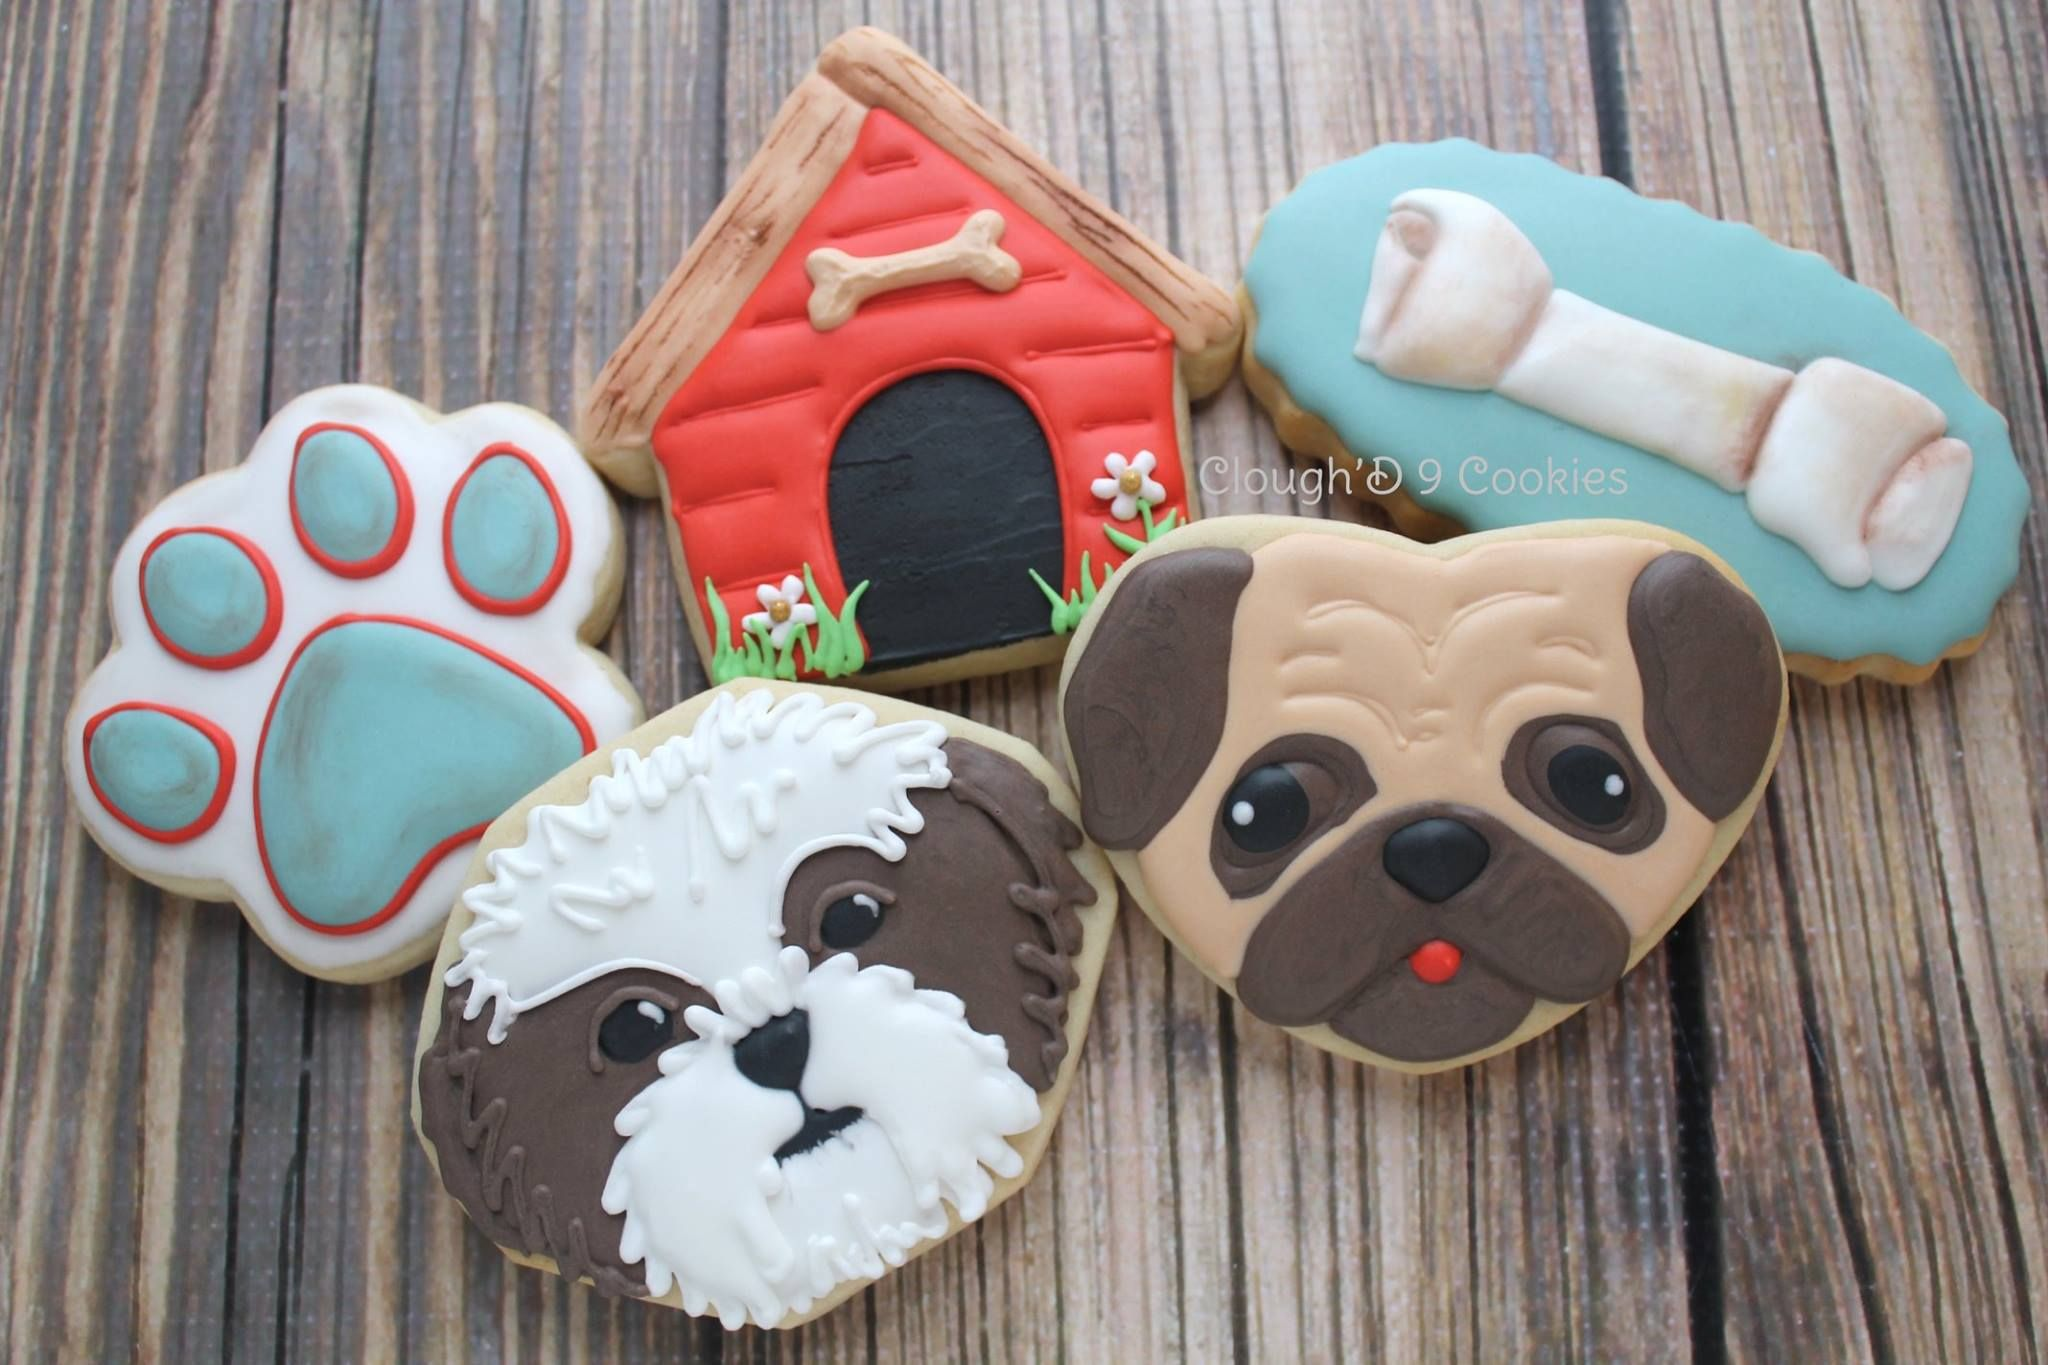 It S Puppy Love Clough D 9 Cookies Sweets Animal Cookies